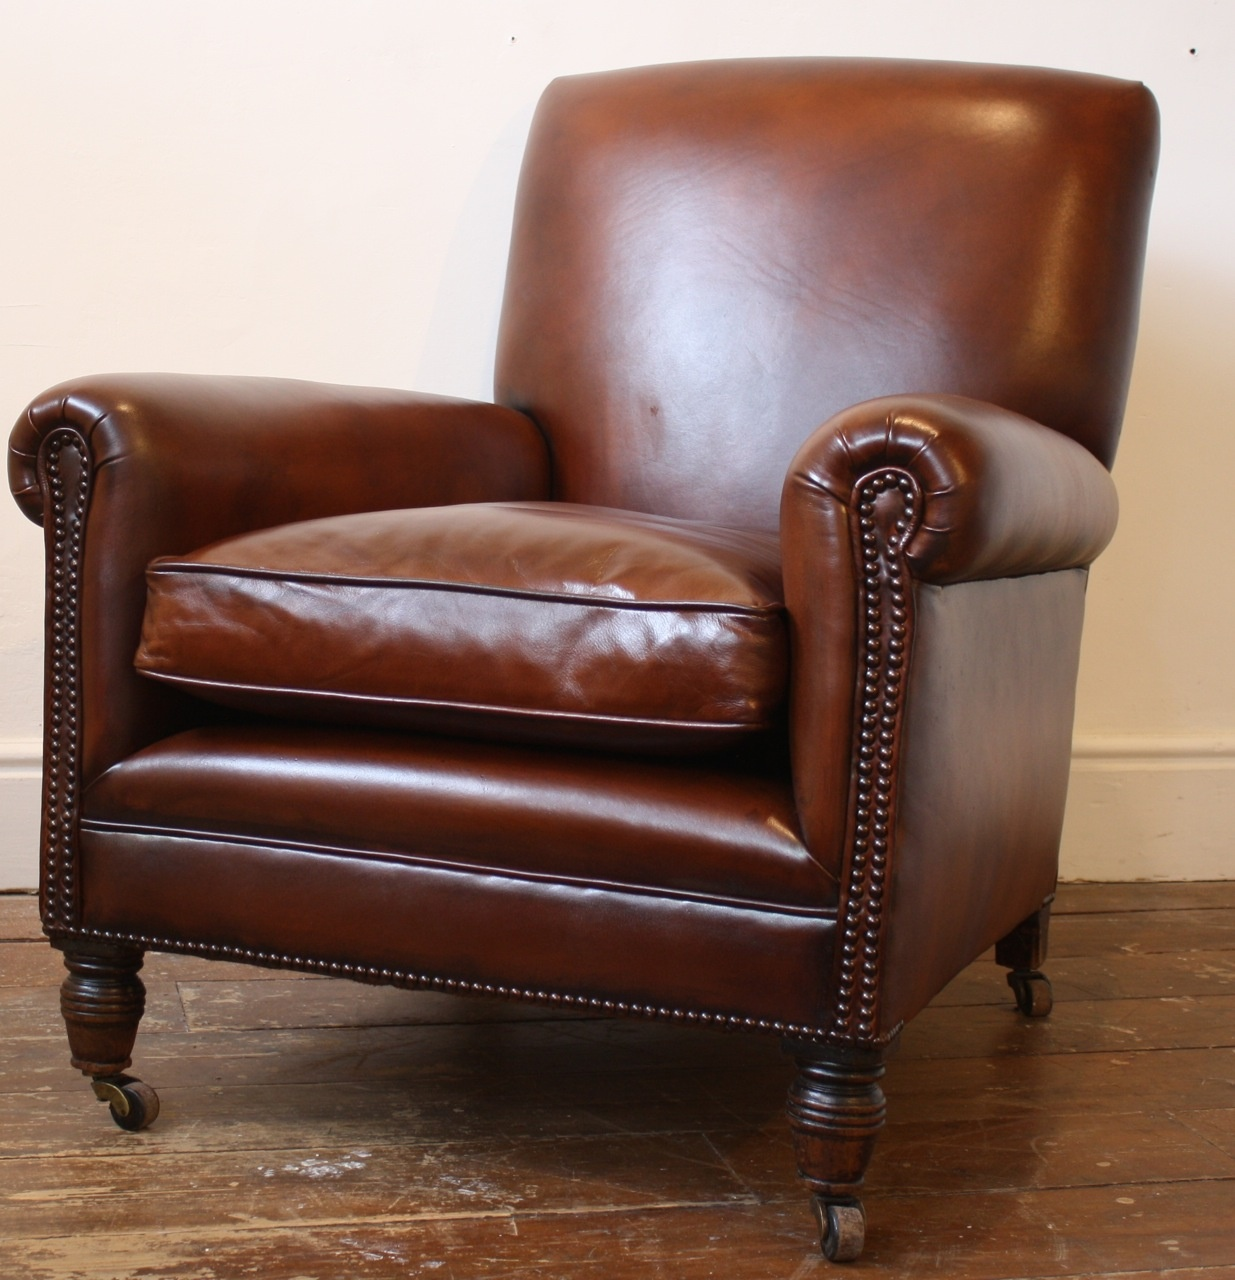 leather sofa and chairs small for bedroom in india reupholstered club chair antique